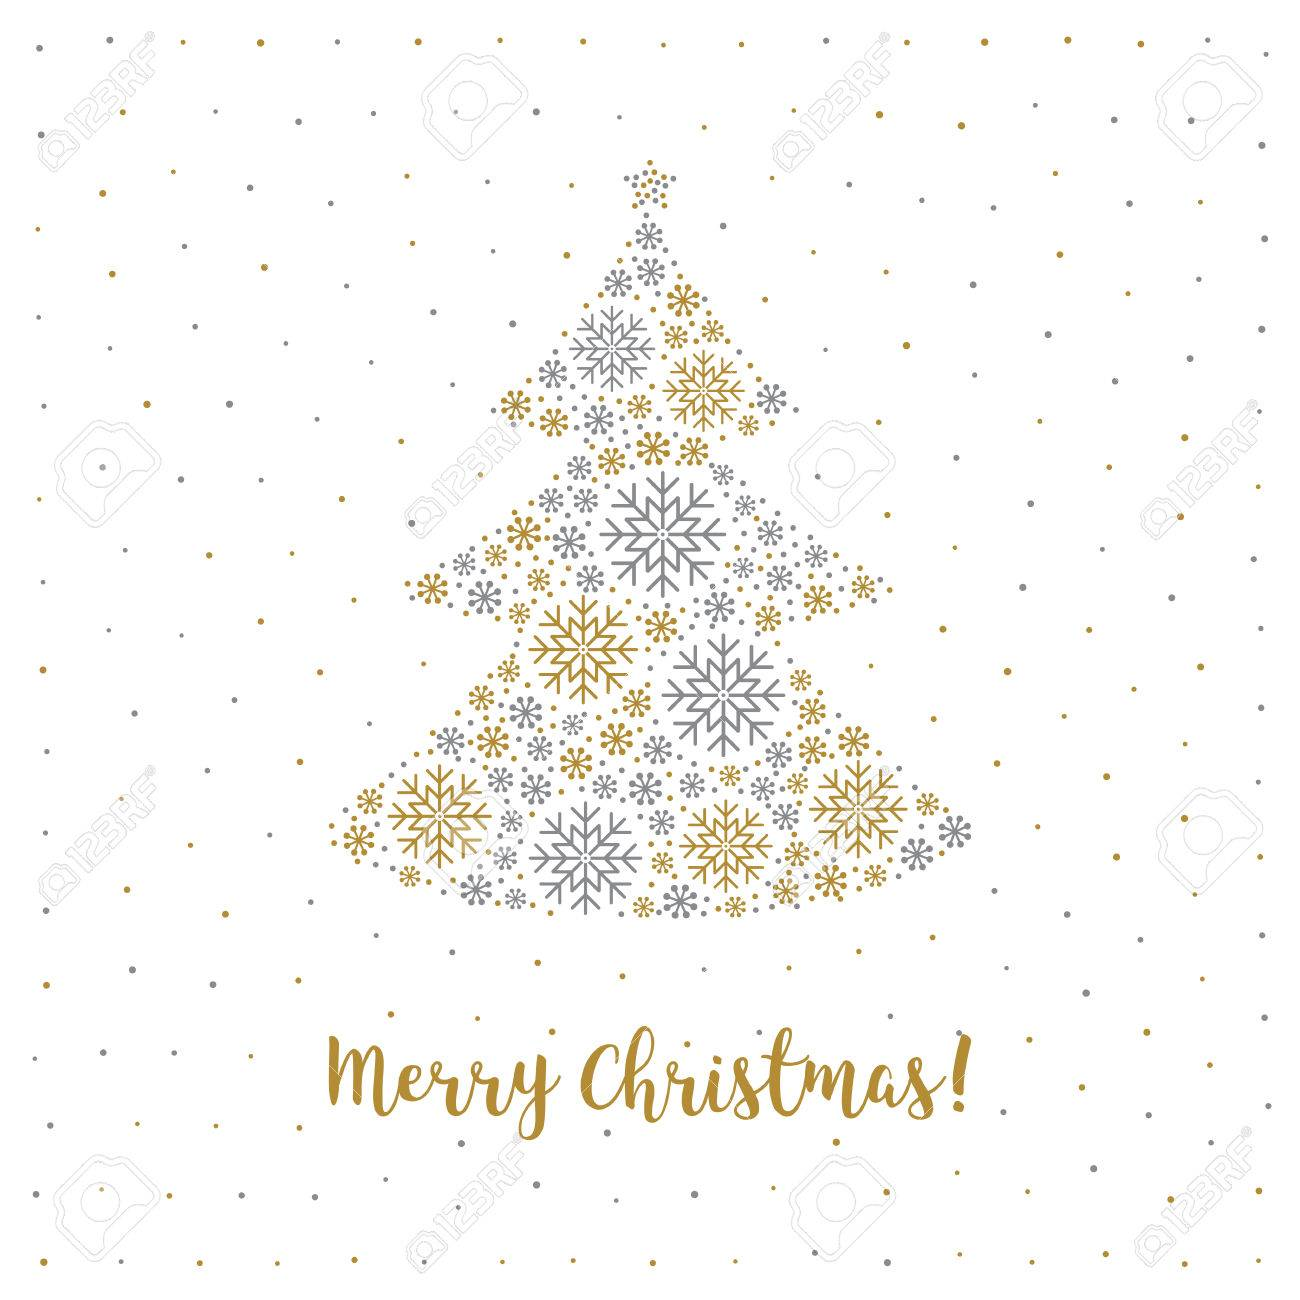 merry christmas card in a minimalist style christmas tree made